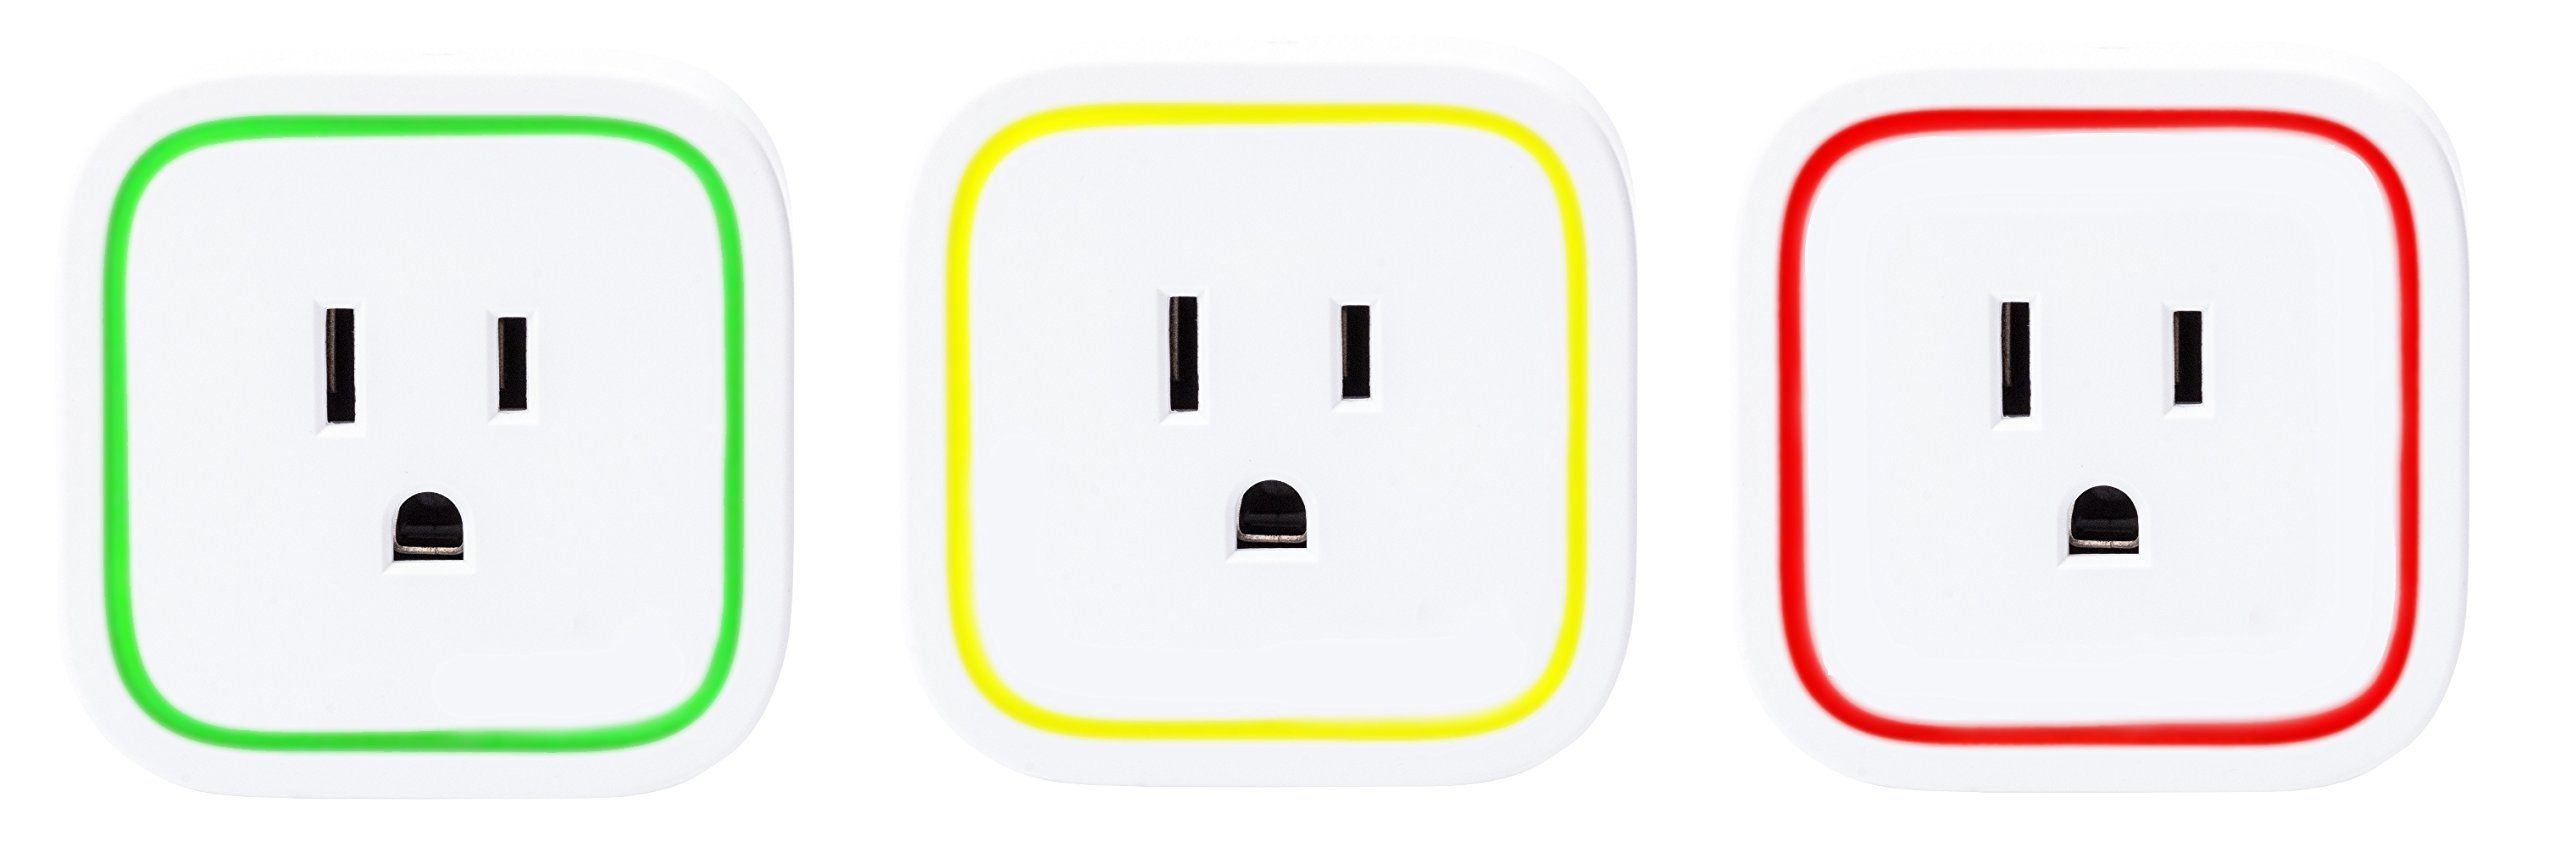 Z-Wave Smart Plug with Energy Metering. Put Lights and Appliances on a Schedule or Control Wirelessly. Works with Most Z-Wave Gateways.